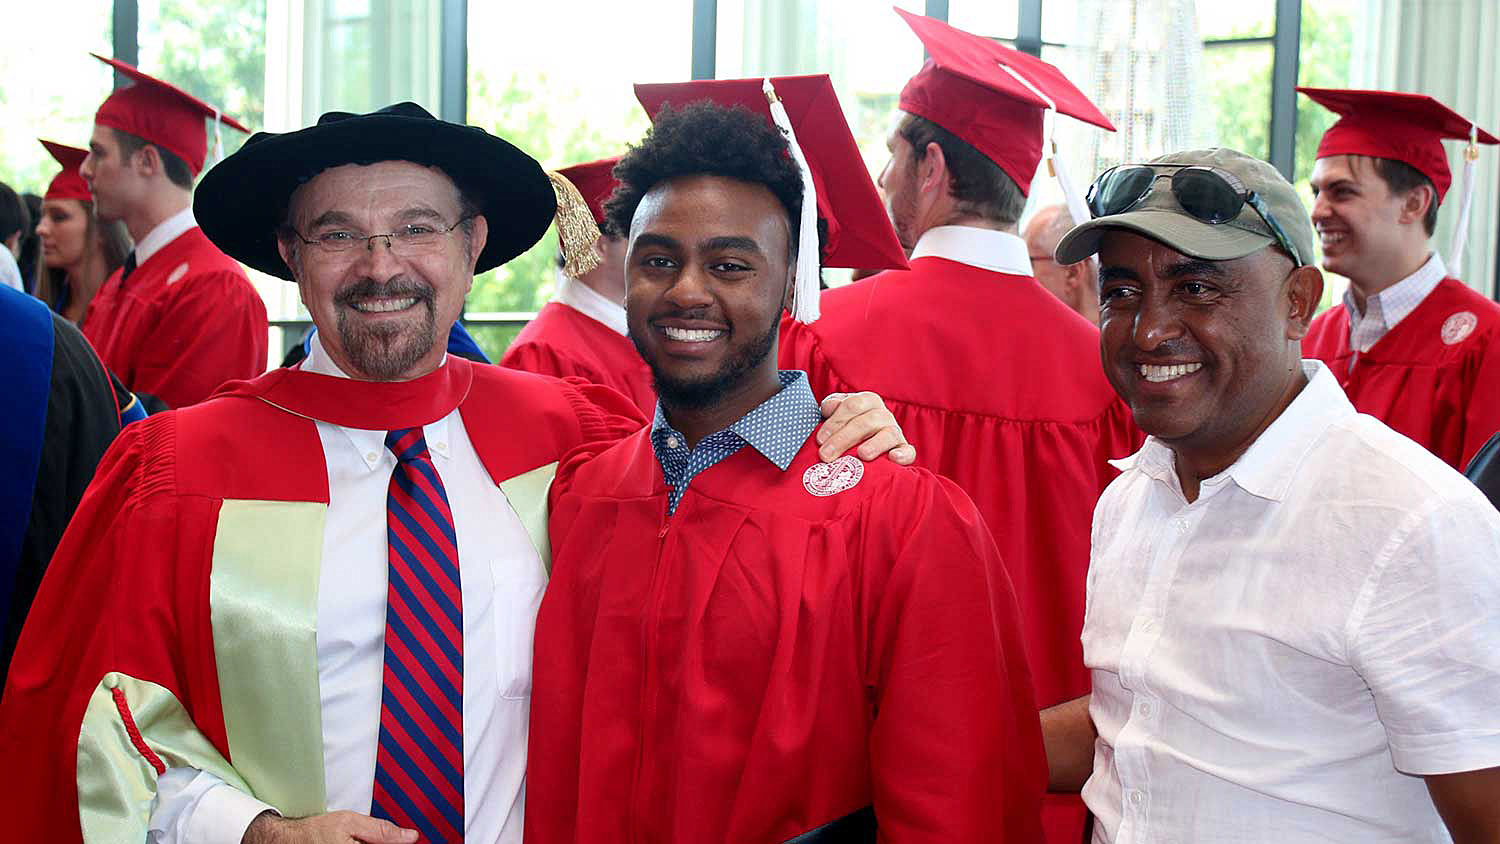 Red Cap and Gown - Admissions - College of Natural Resources NCState University